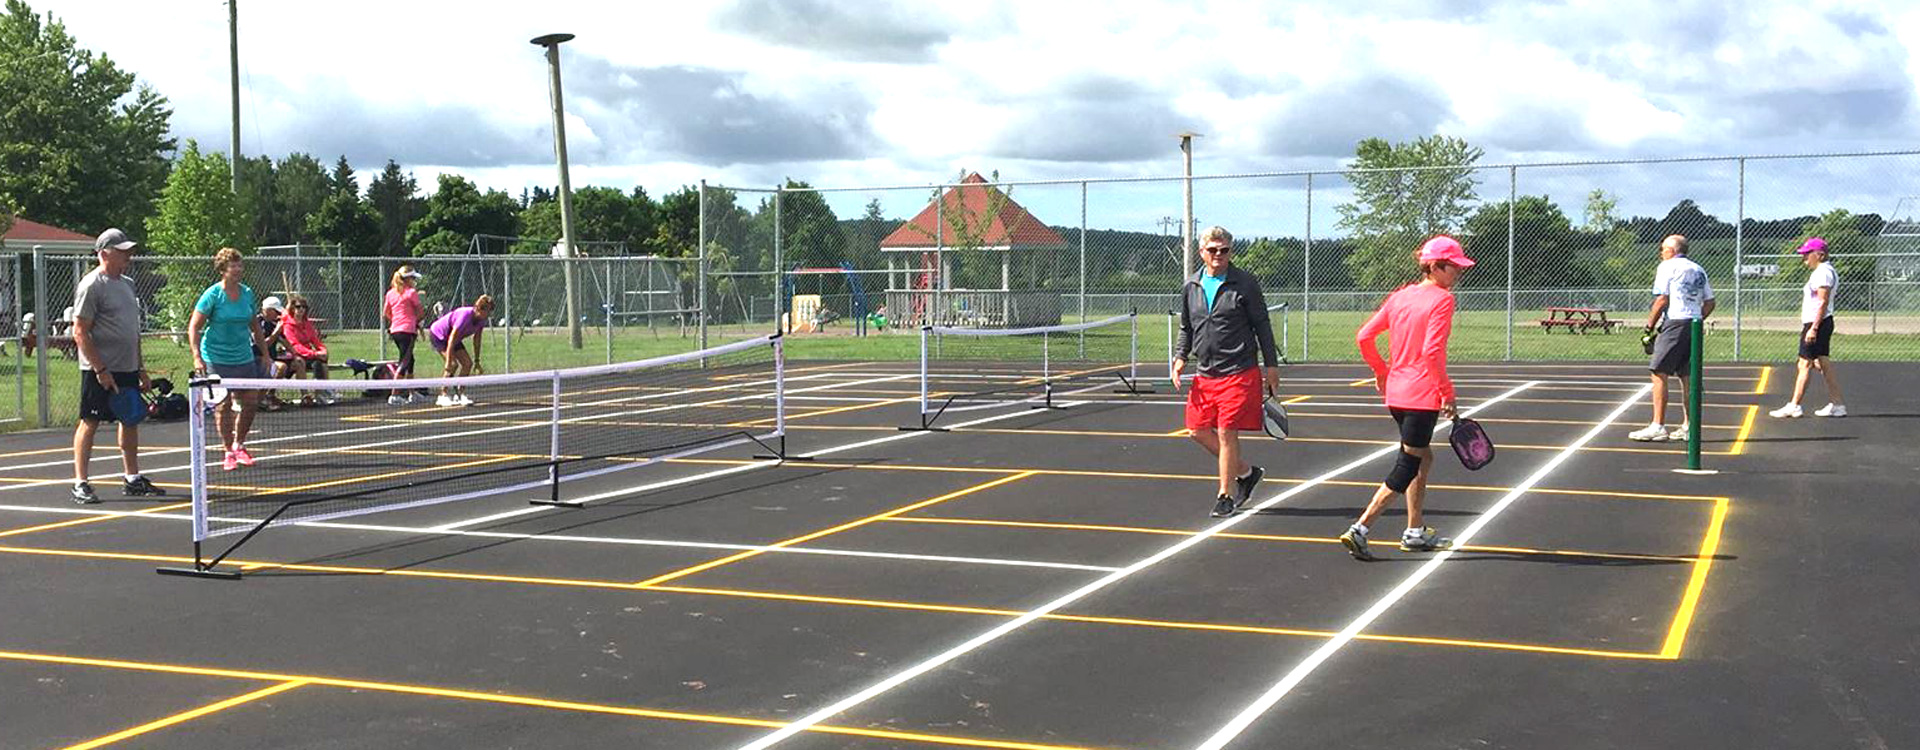 Miltonvale-Park - pickleball at the Park